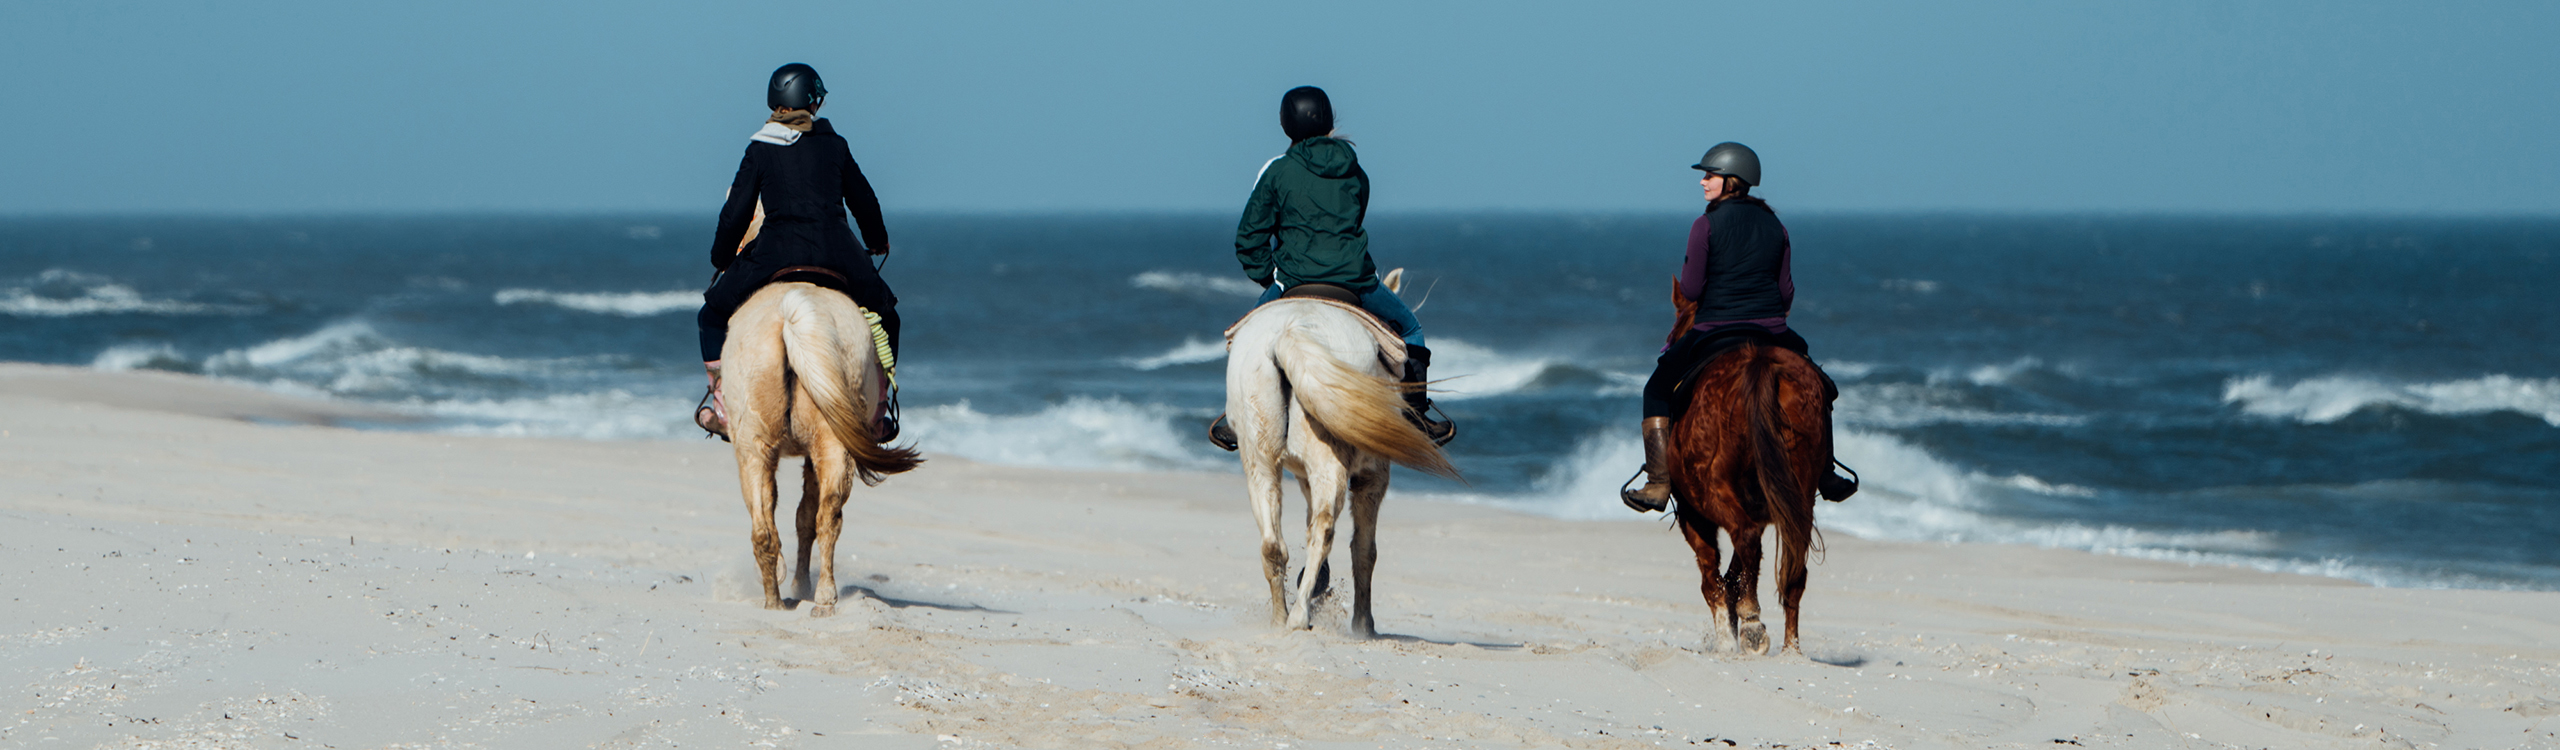 Horseback Riding at Island Beach State Park